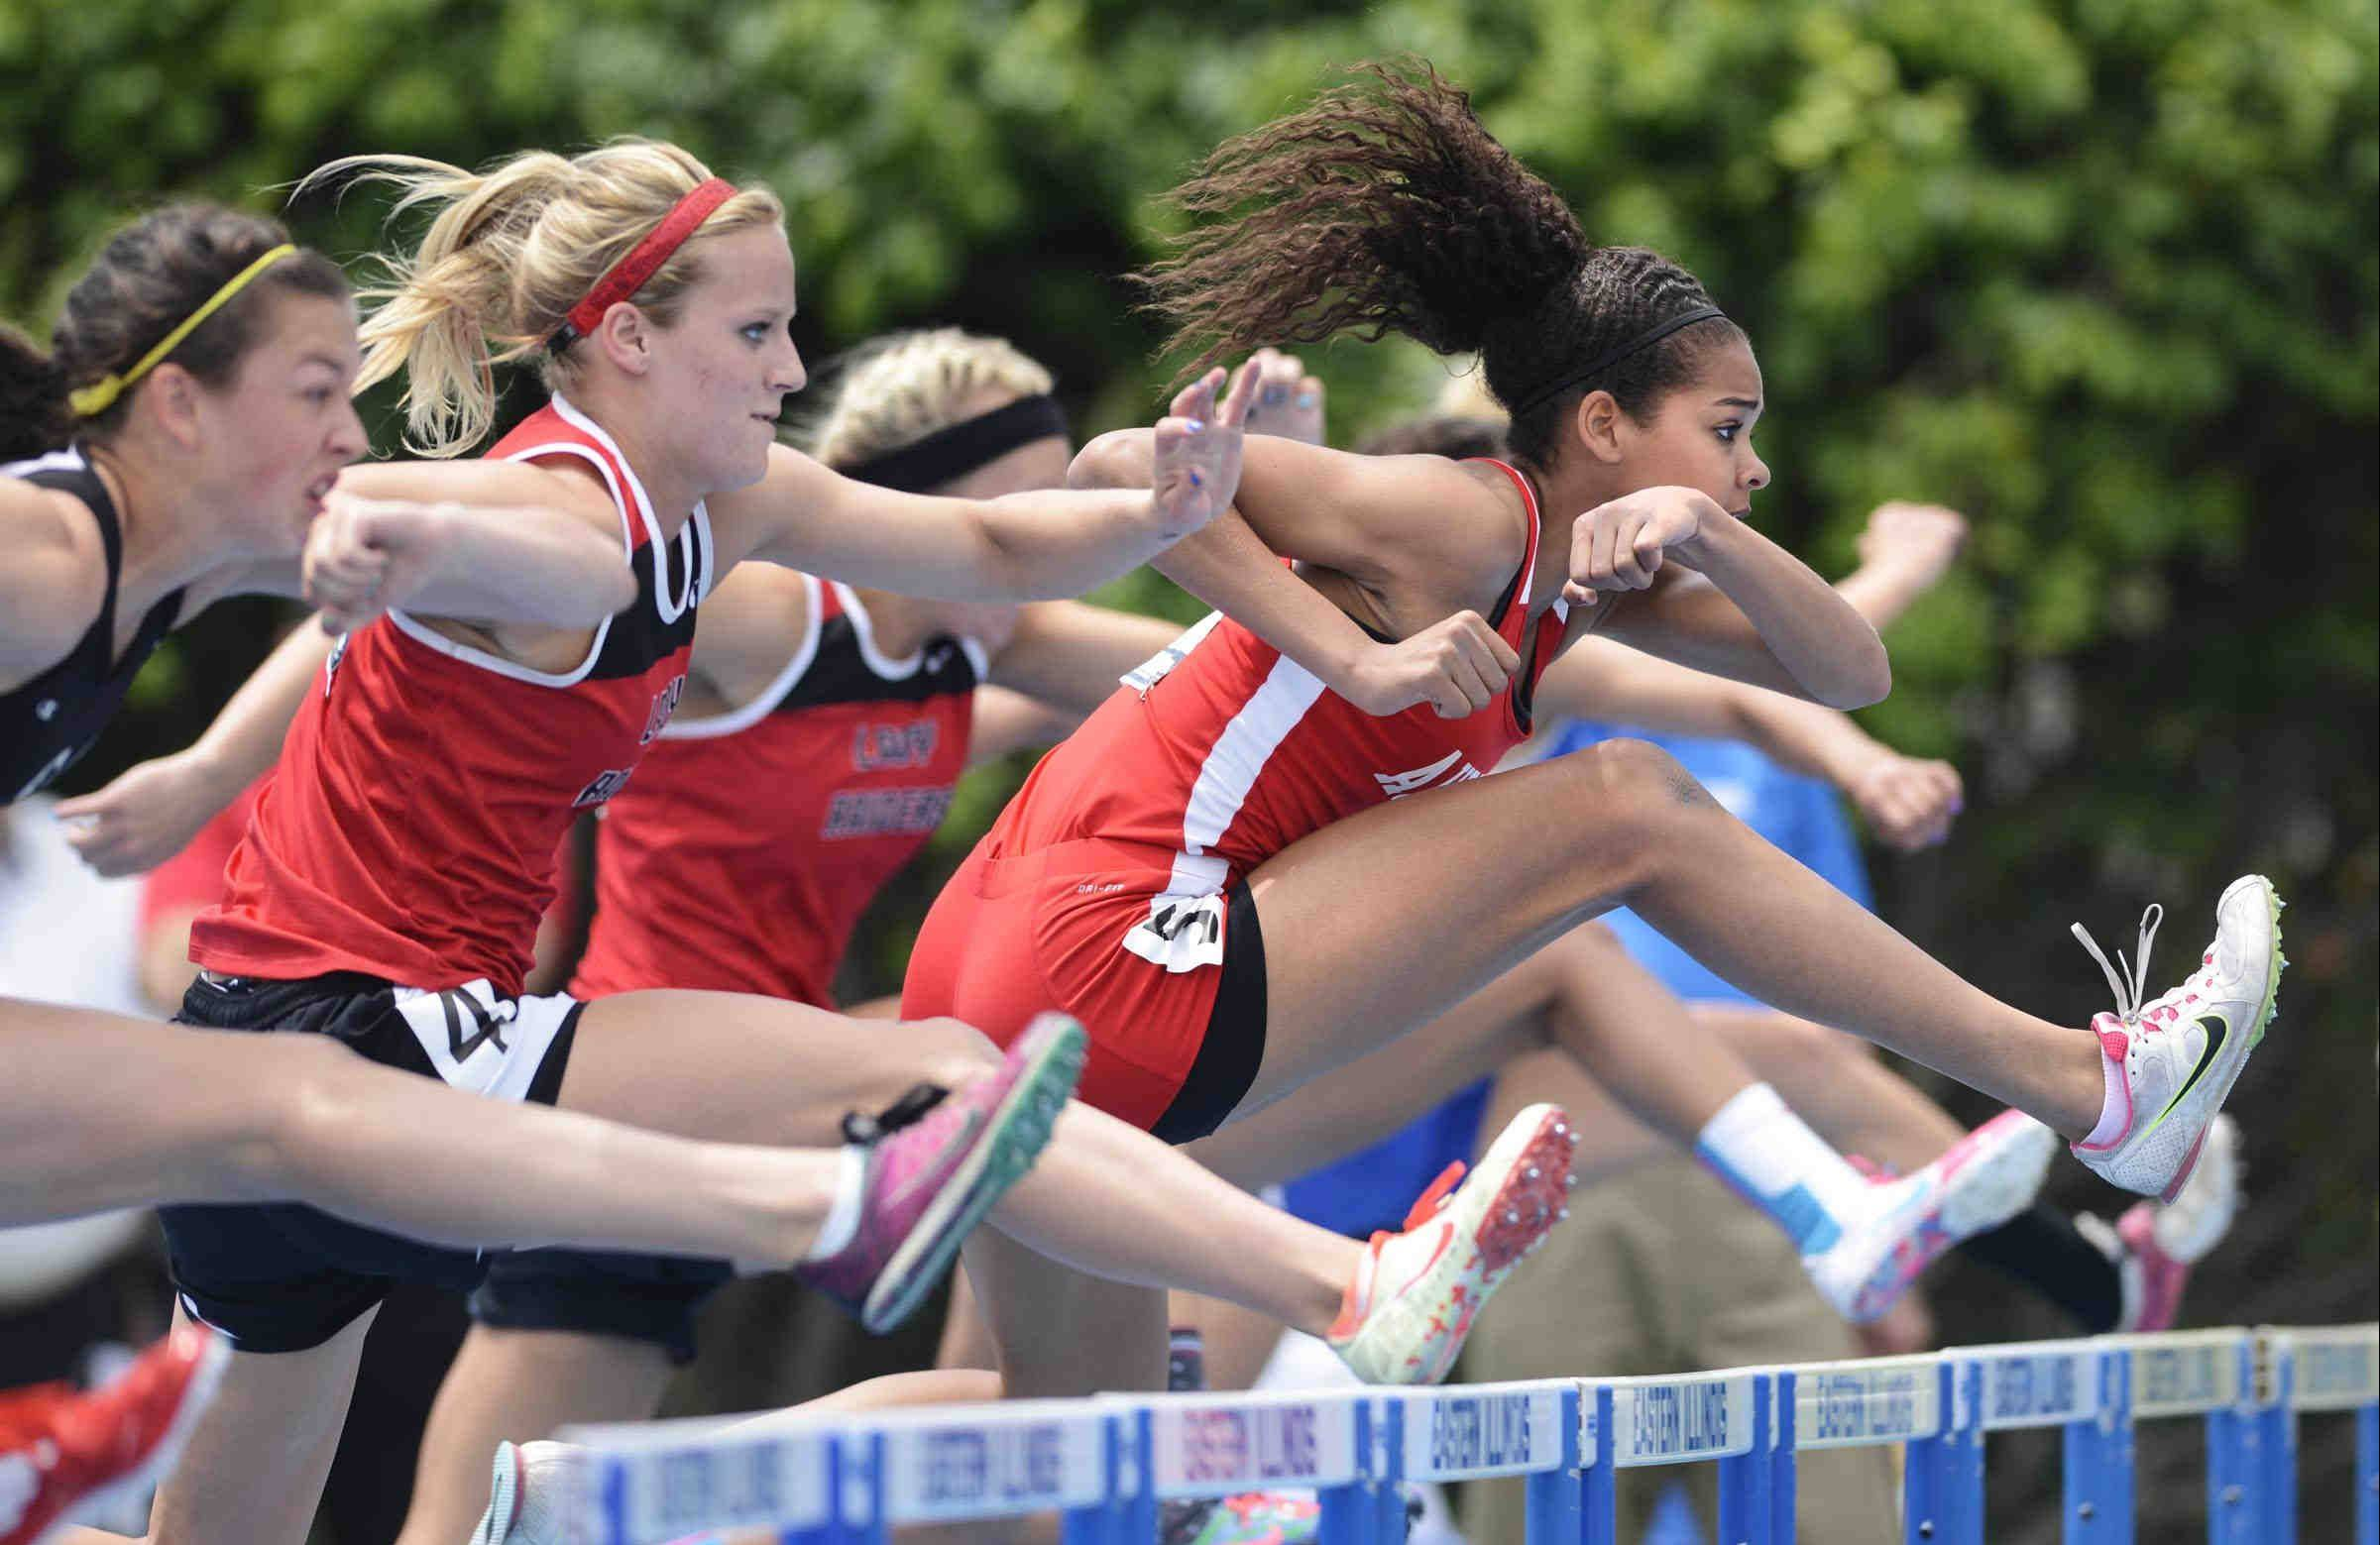 Aurora Christian�s Peyton Wade leads the field over the first hurdle on her way to a state championship in the 100 meter high hurdles Saturday.